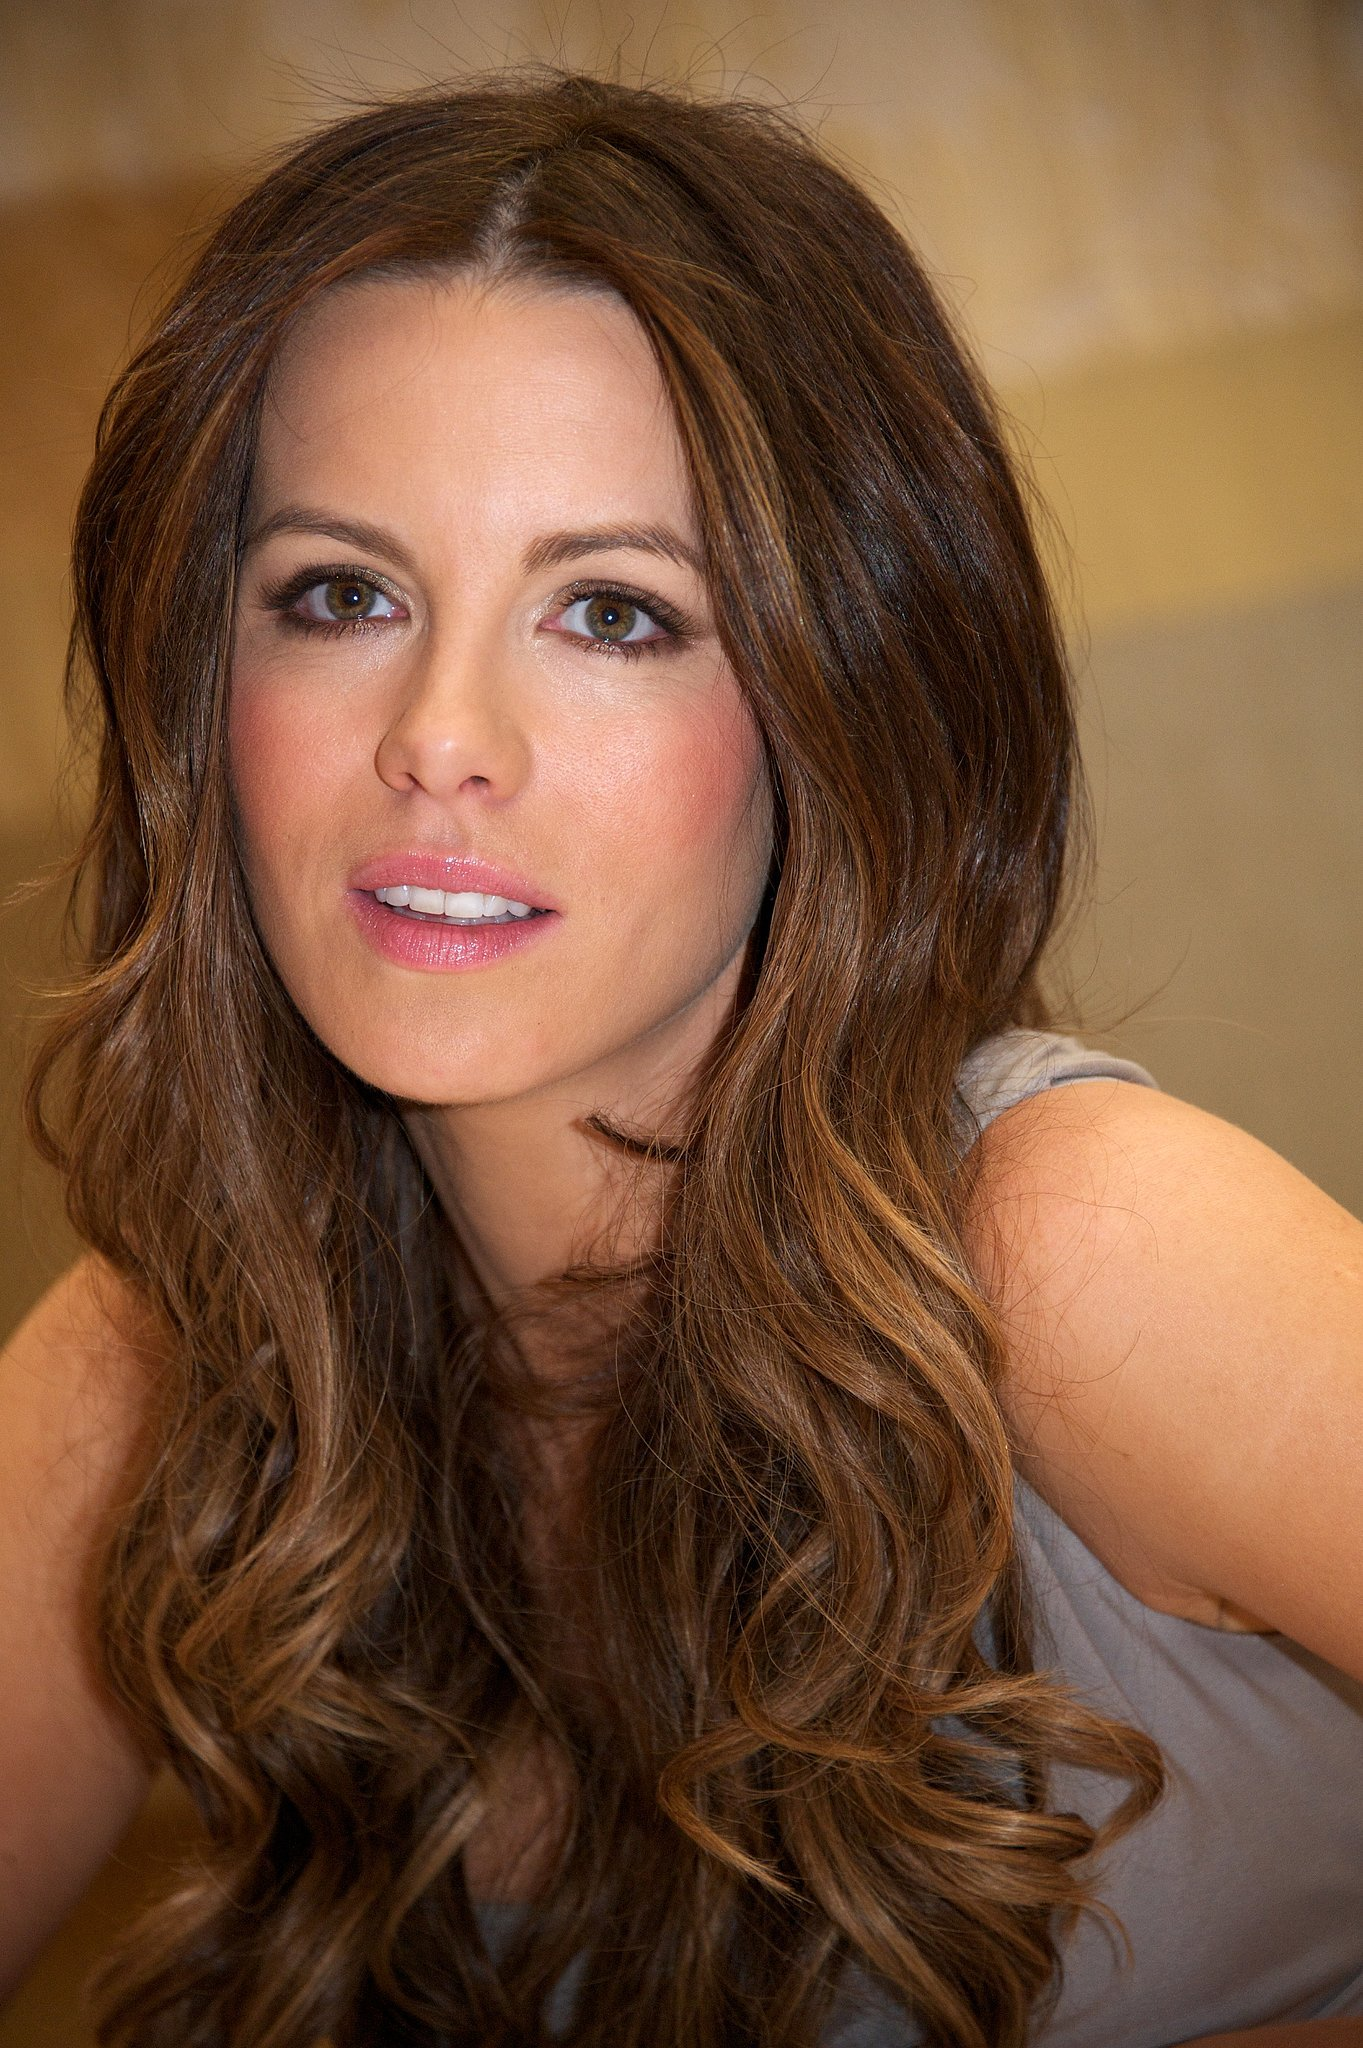 Kate Beckinsale posed in January 2012 for the Underworld: Awakening press conference.